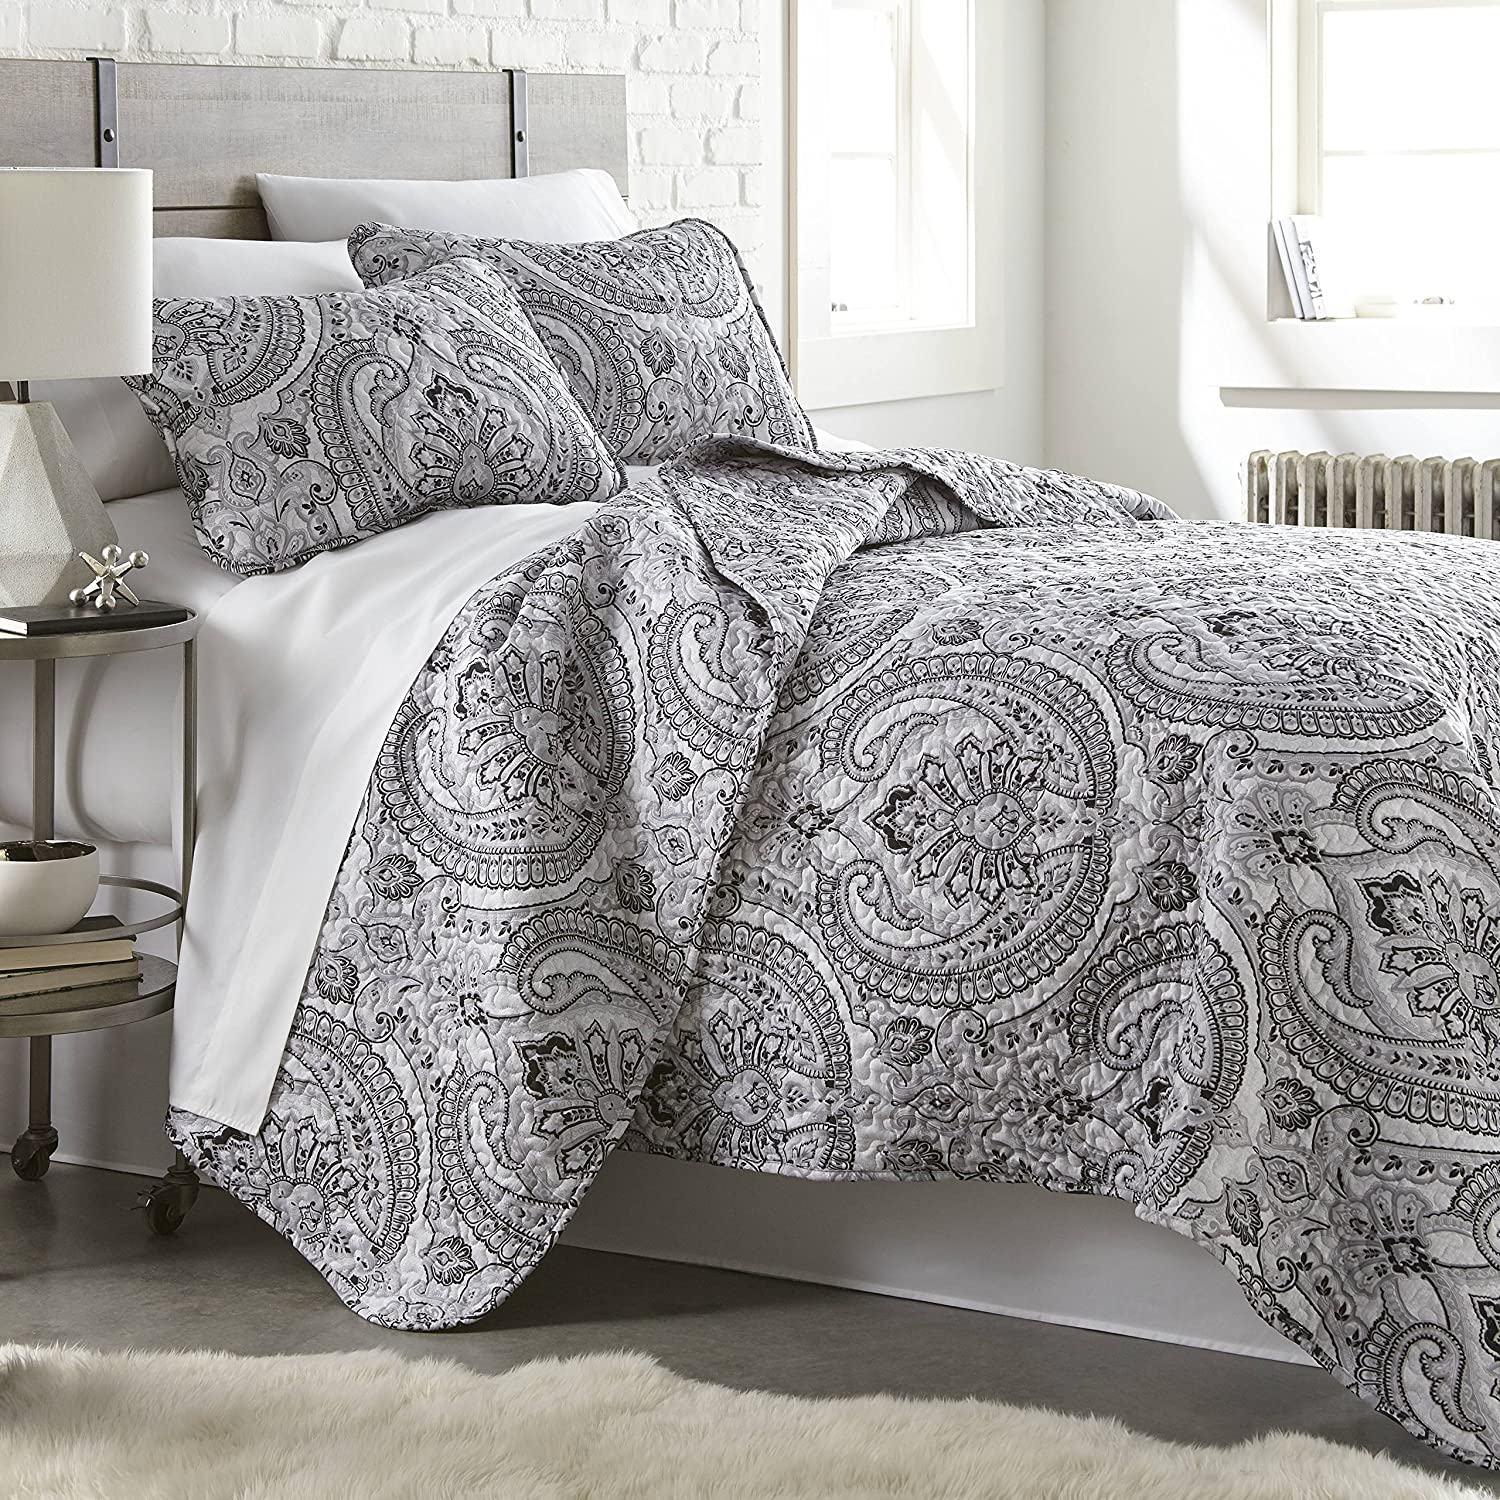 Southshore Fine Linens - The Pure Melody Collection - Quilts Sets, 3 Piece Set, Full/Queen, Black